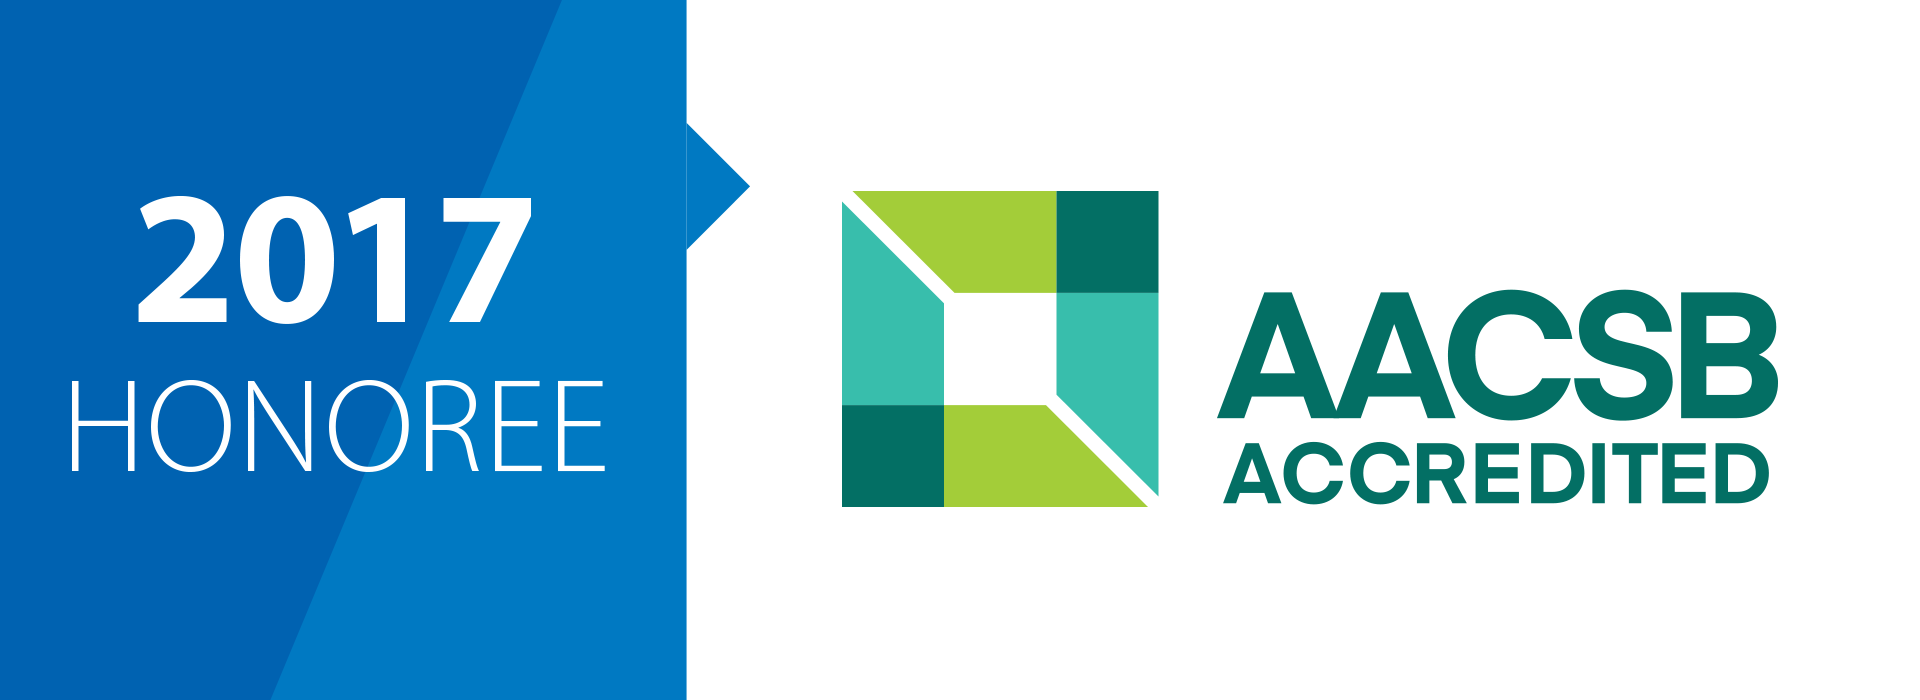 2017 AACSB Honoree